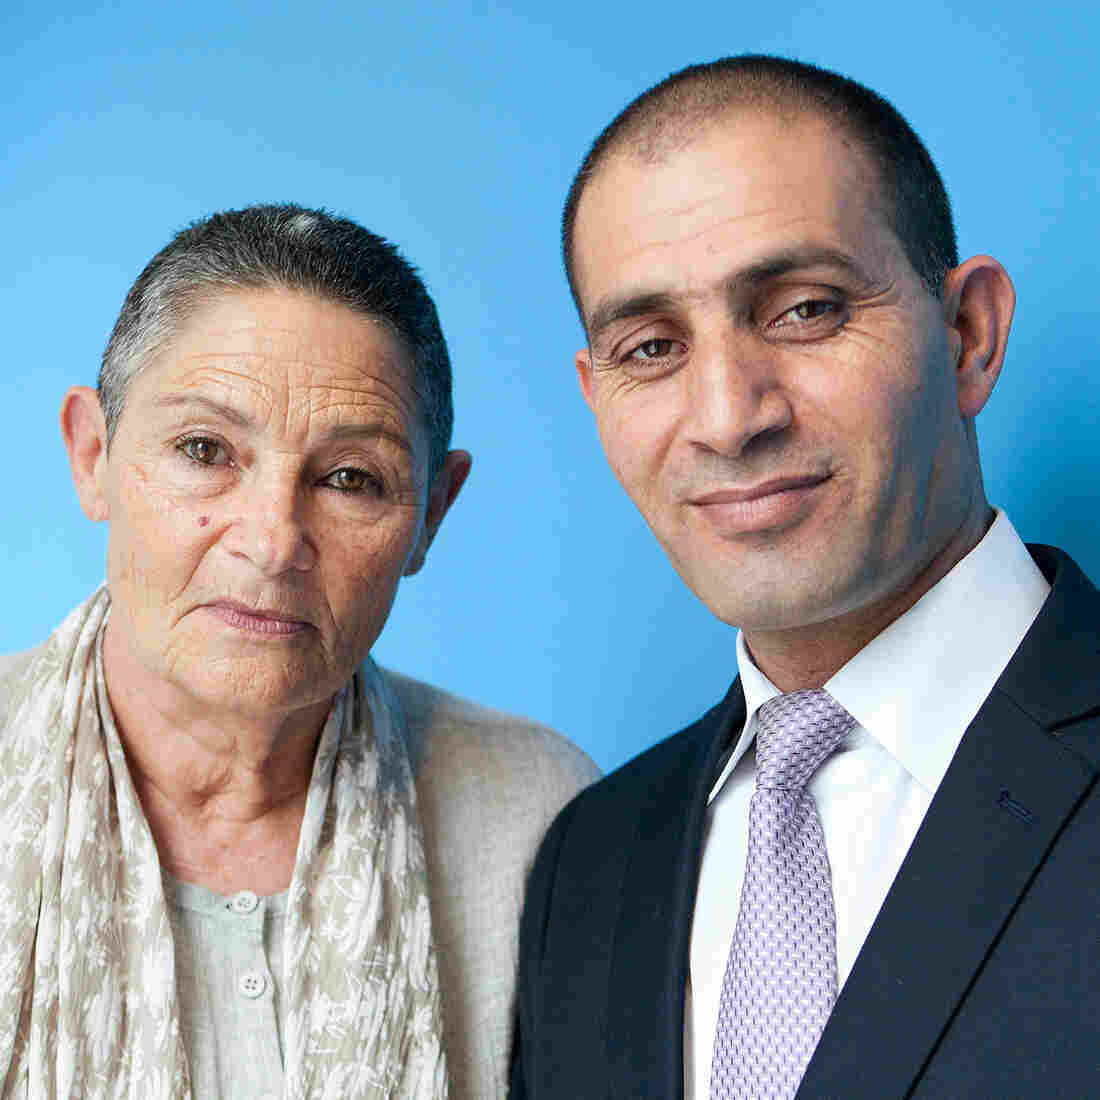 Israeli, Palestinian Parents Share Their Painful Stories Of Loss